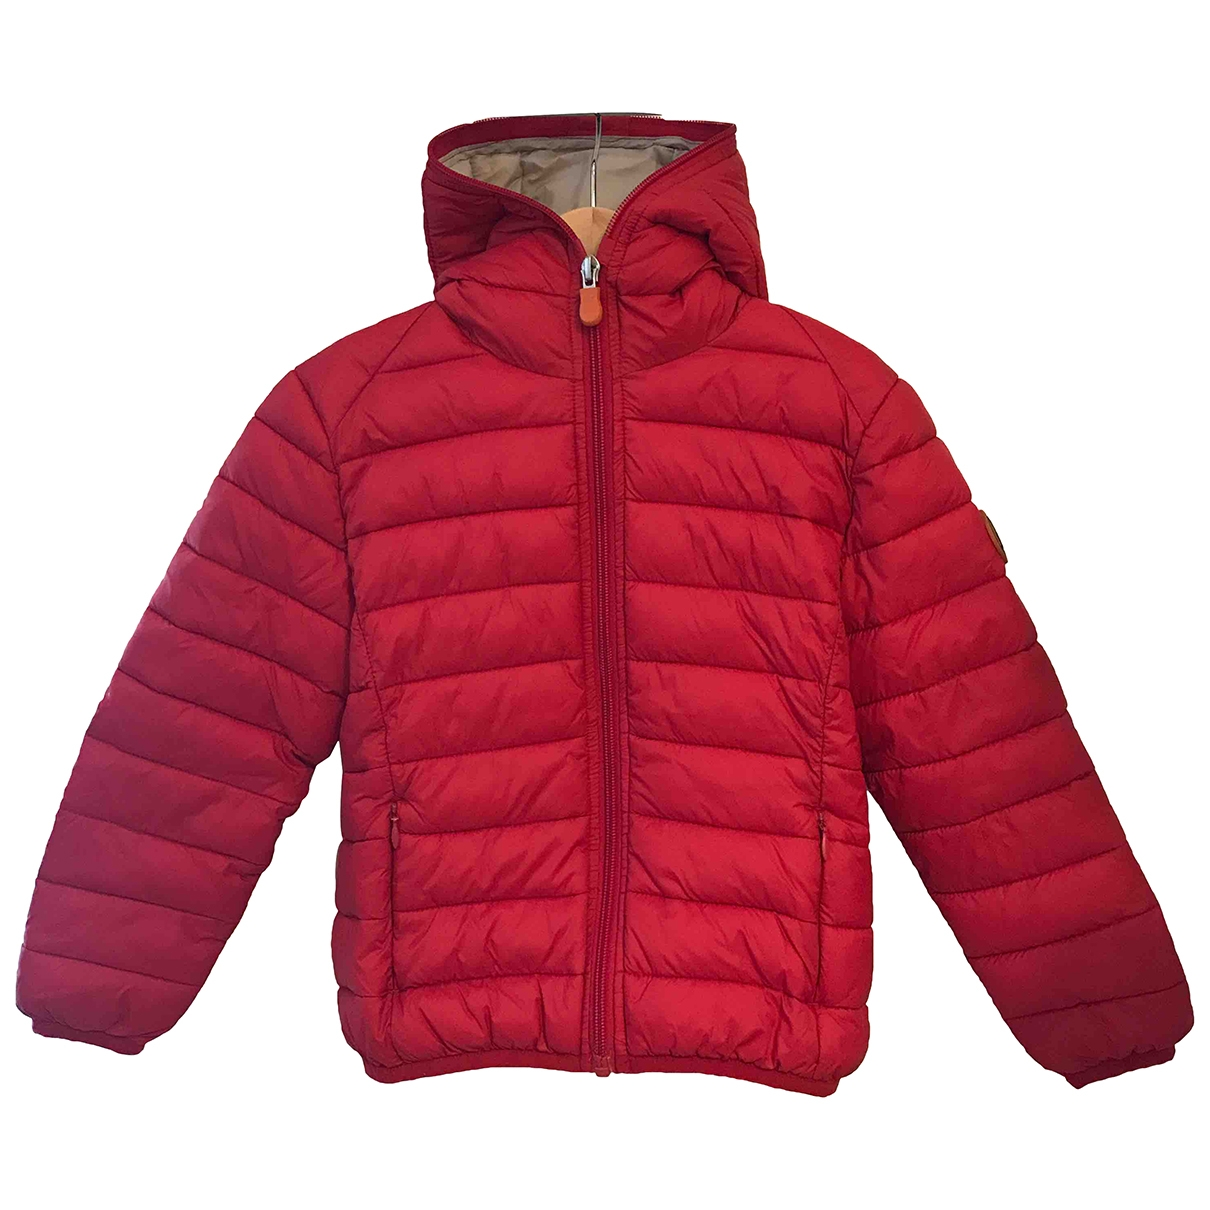 Save The Duck \N Red jacket & coat for Kids 4 years - up to 102cm FR